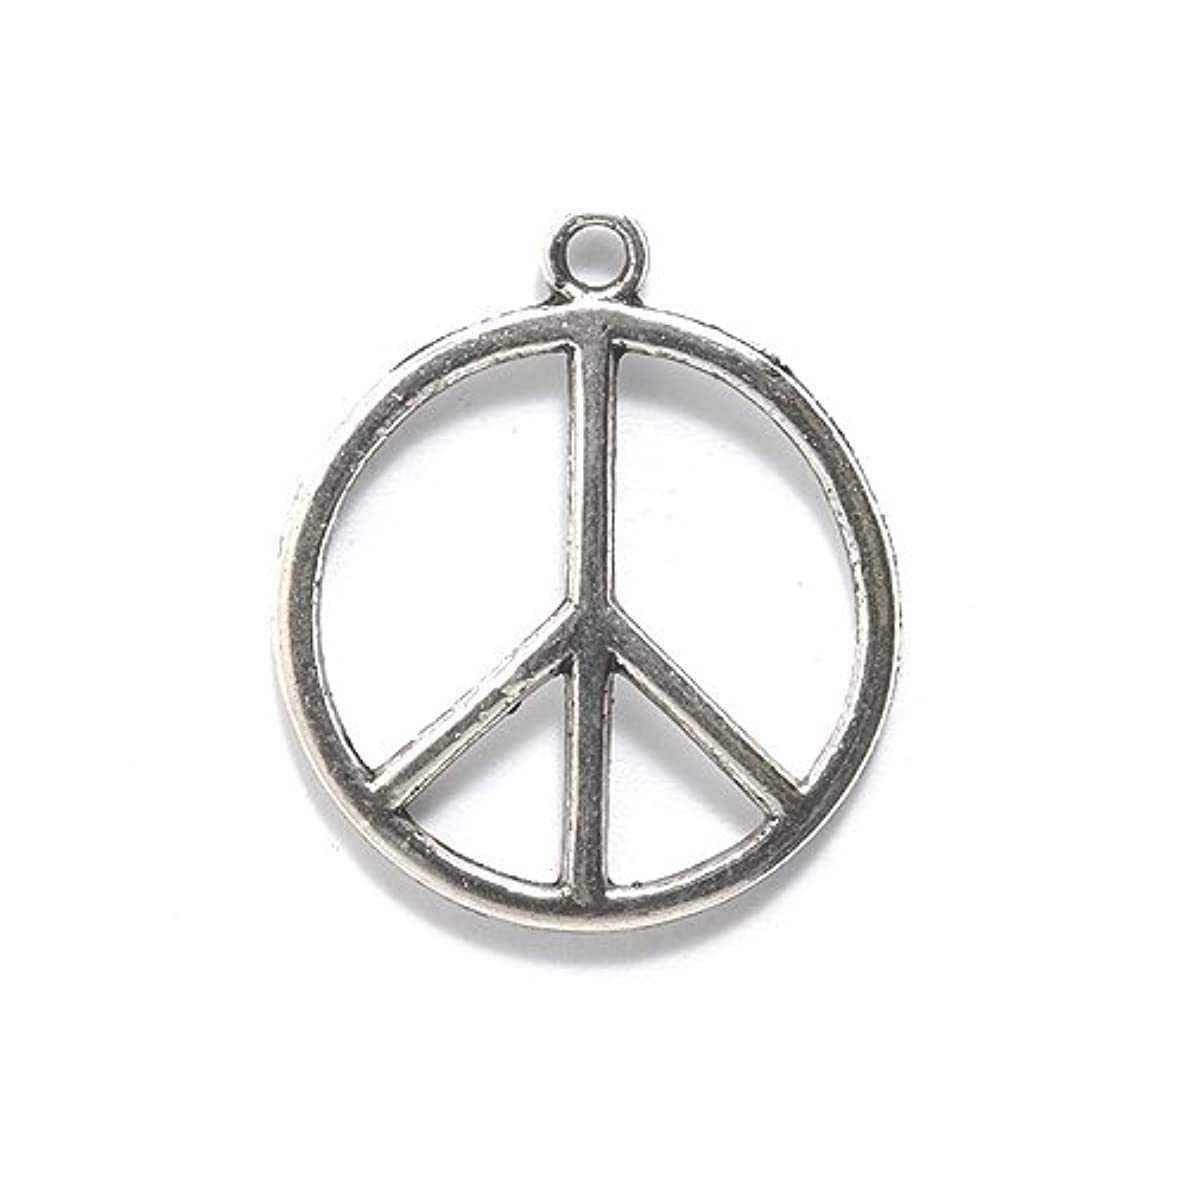 Shipwreck Beads Zinc Alloy Peace Sign Pendant, 25mm, Silver, 36-Pack